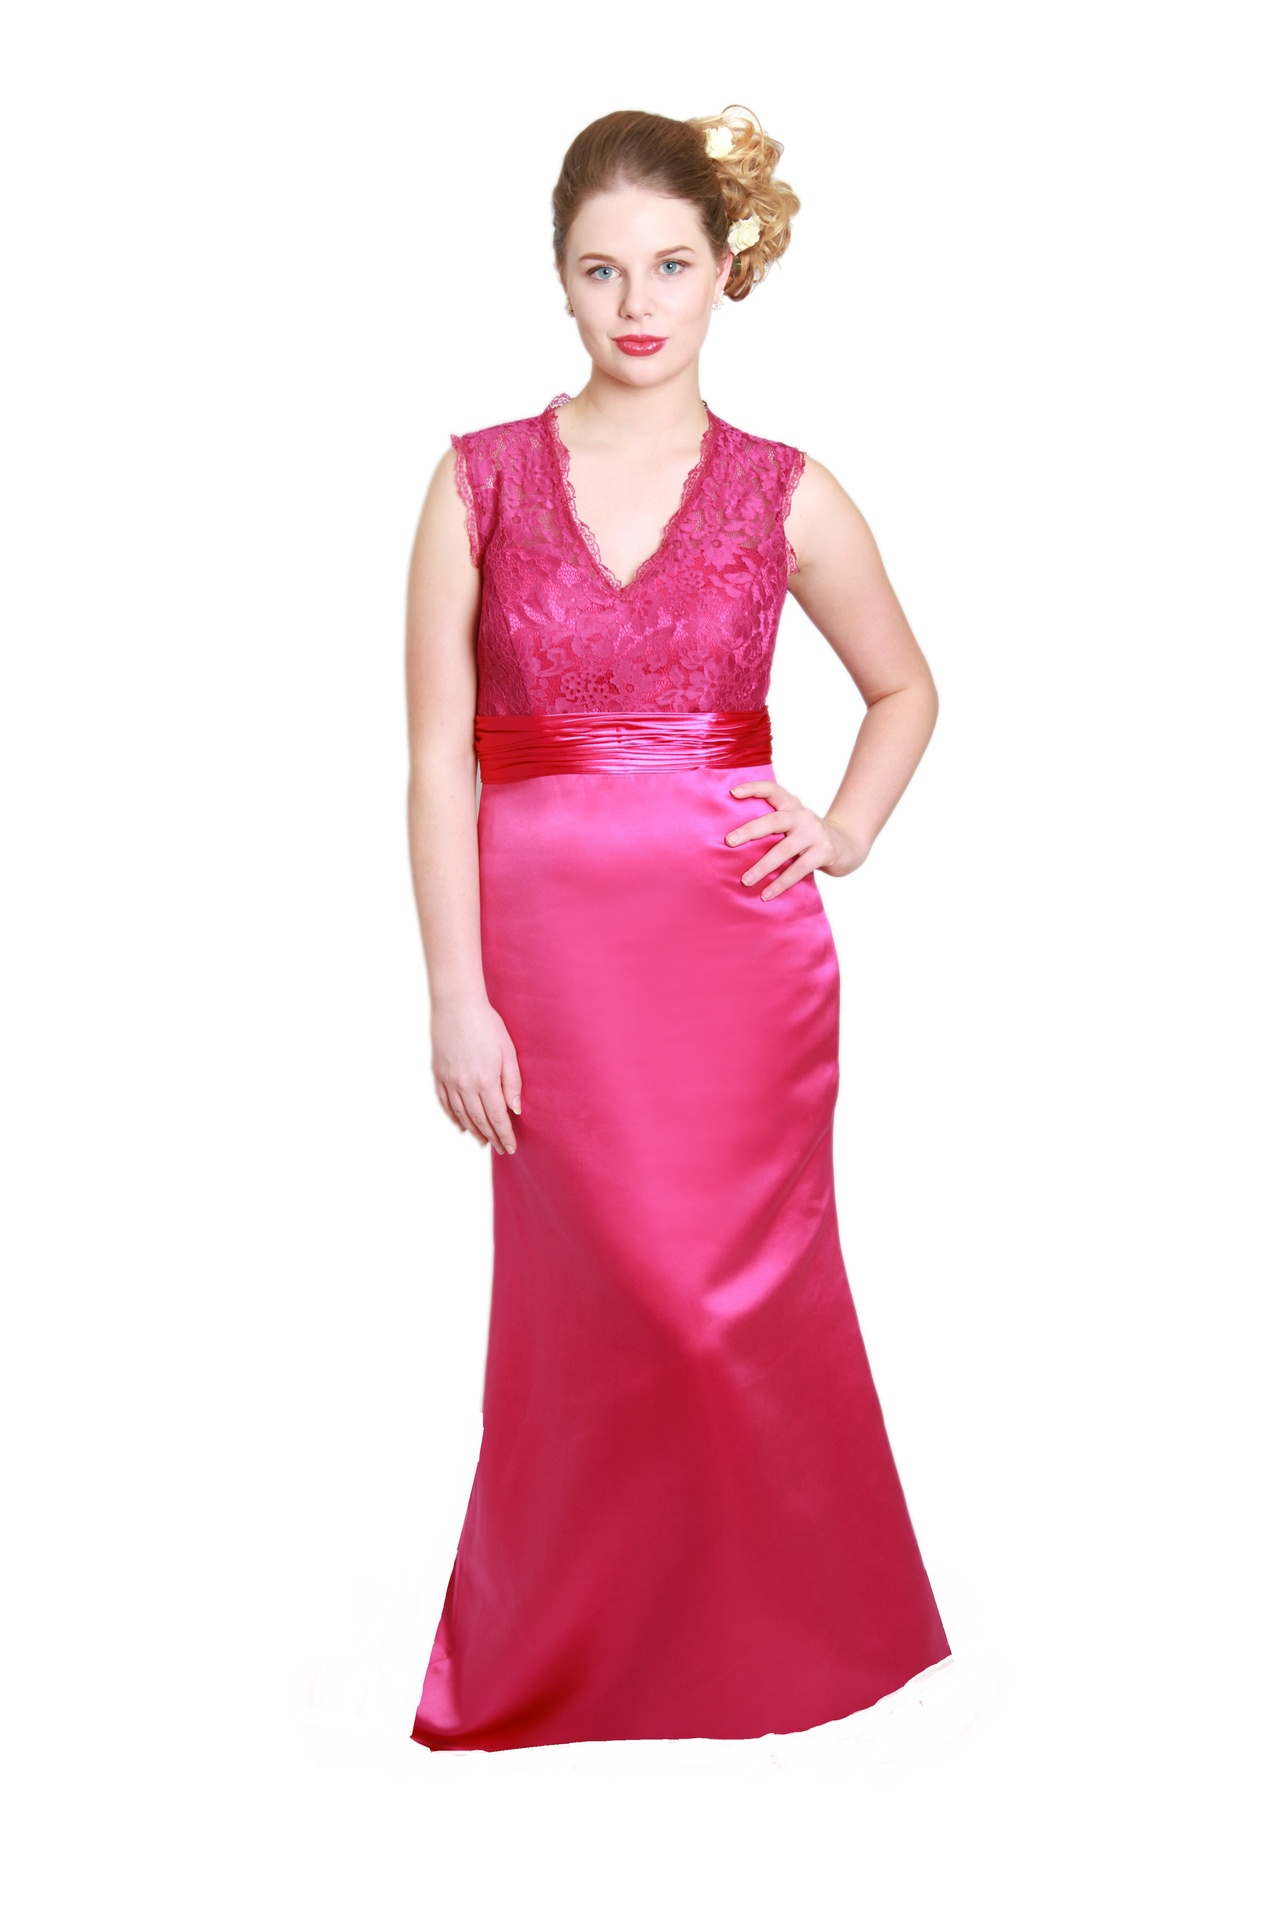 Bridesmaid dresses for different shapes and sizes bridesmaid dresses milton keynes fuchsia bridesmaid dresses with lace detail ombrellifo Images